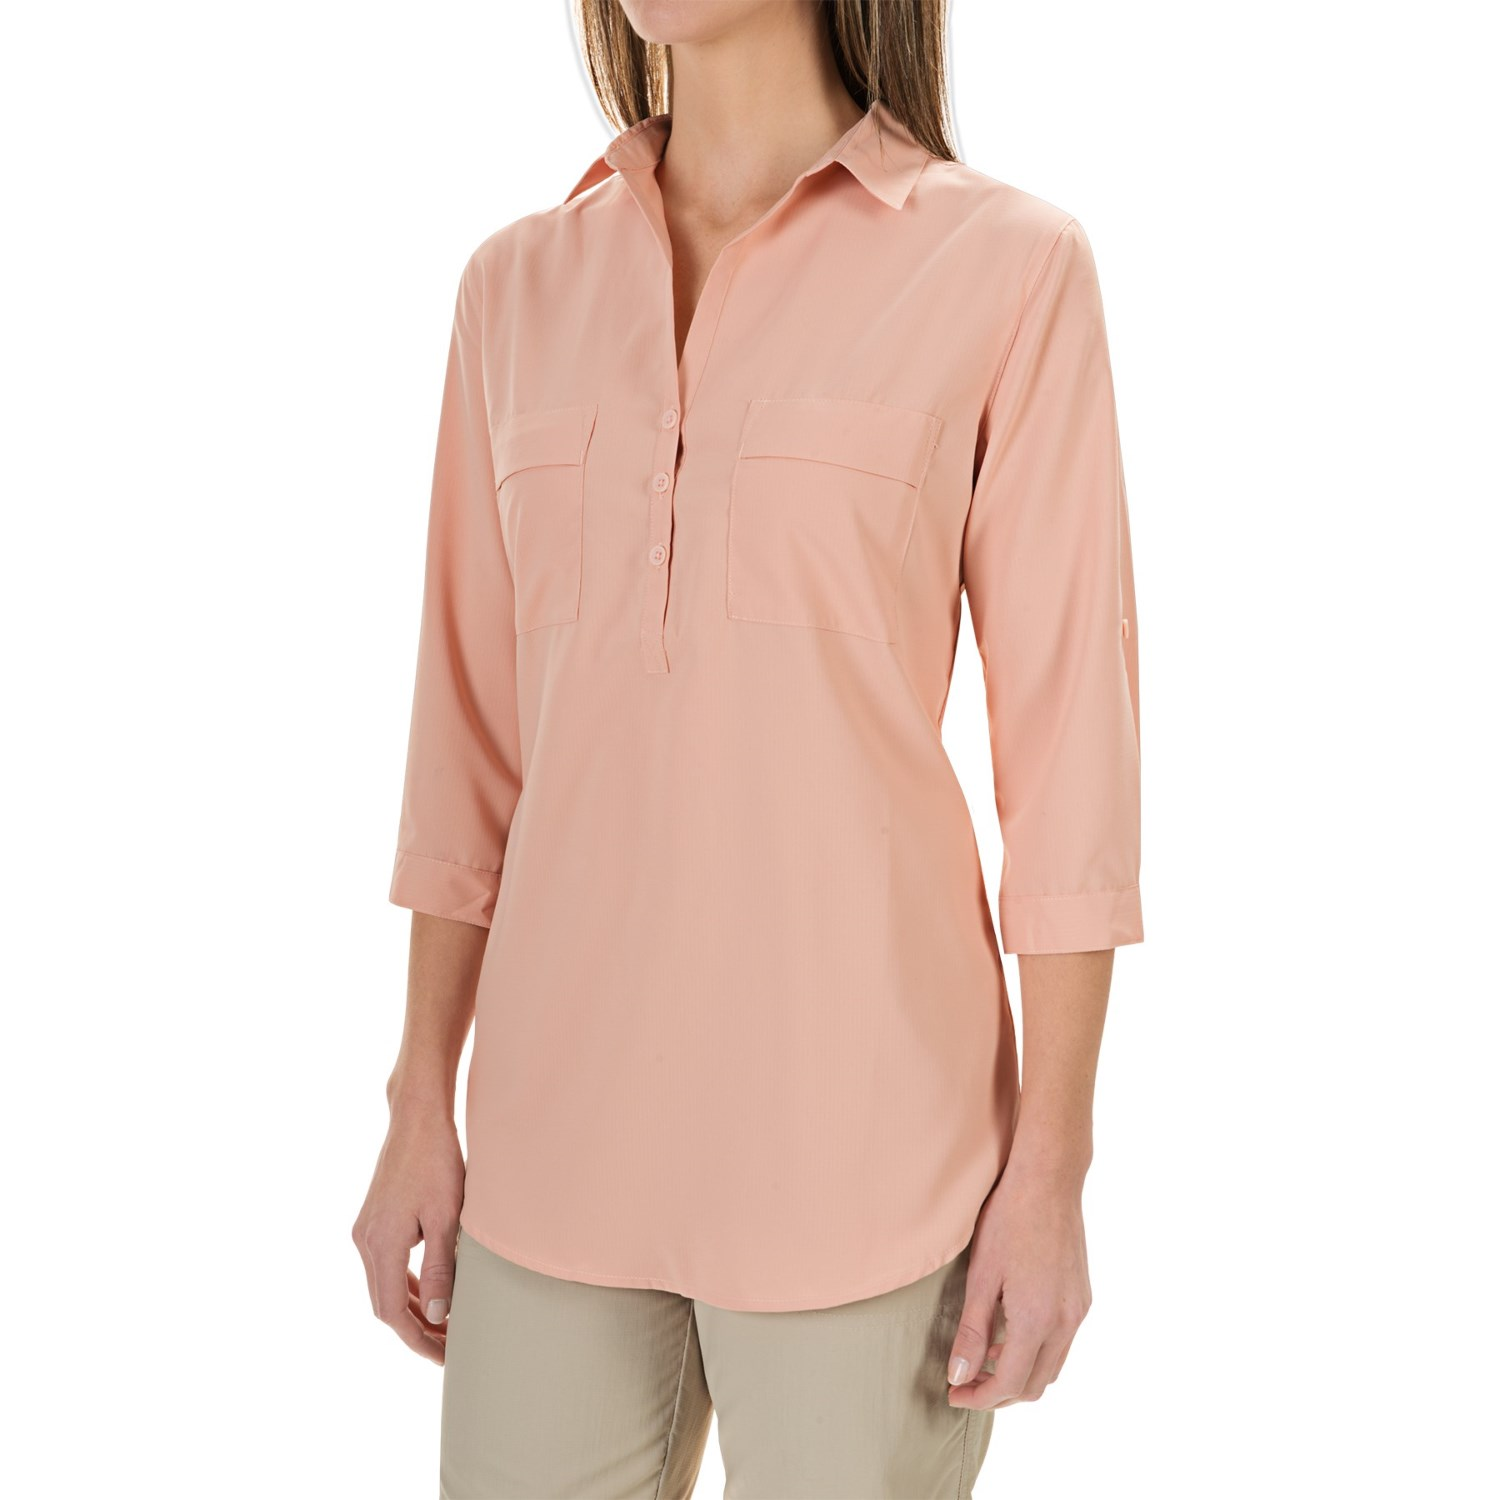 Royal robbins expedition stretch shirt for women save 57 for Royal robbins expedition shirt 3 4 sleeve women s